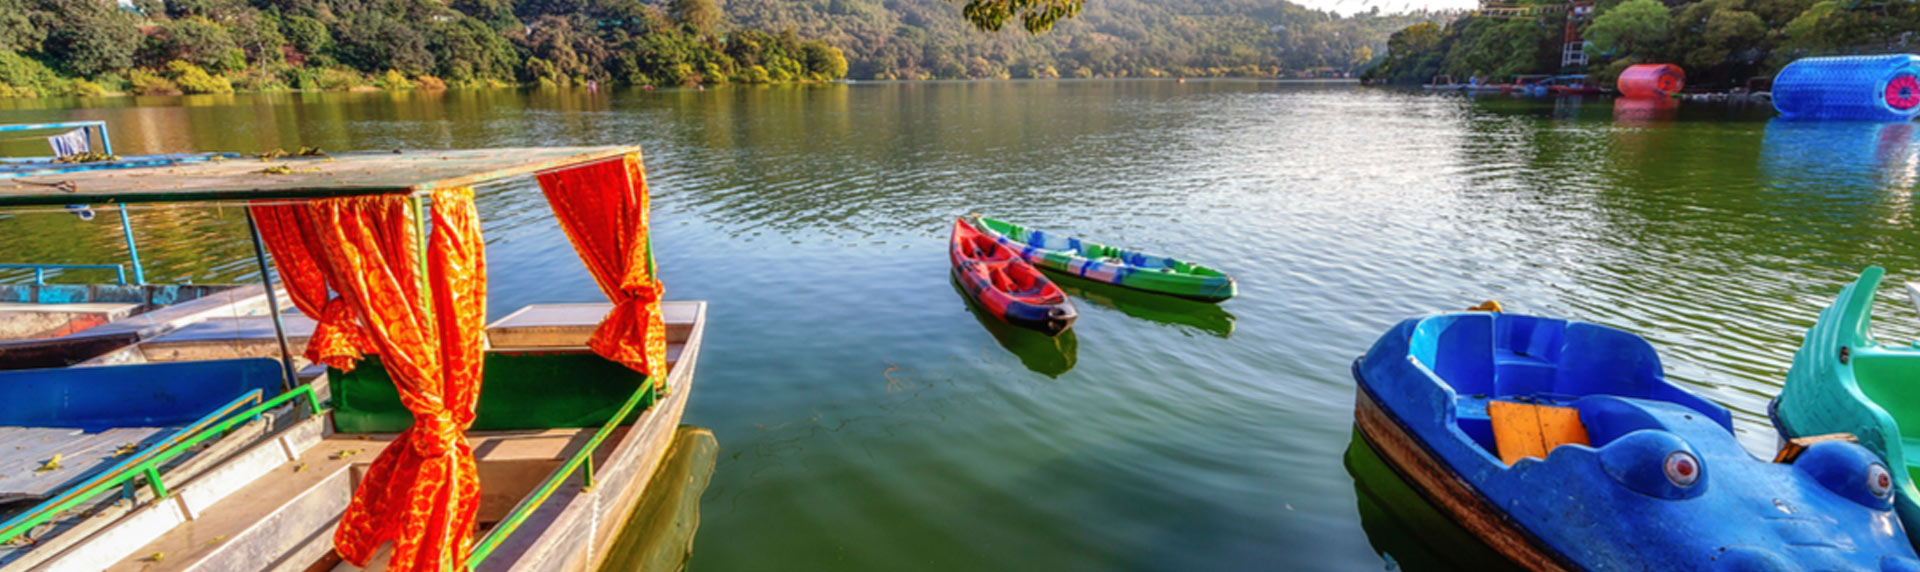 Boating in Naukuchiatal lake Uttarakhand is one of the popular things to do and is famous for sightseeing places